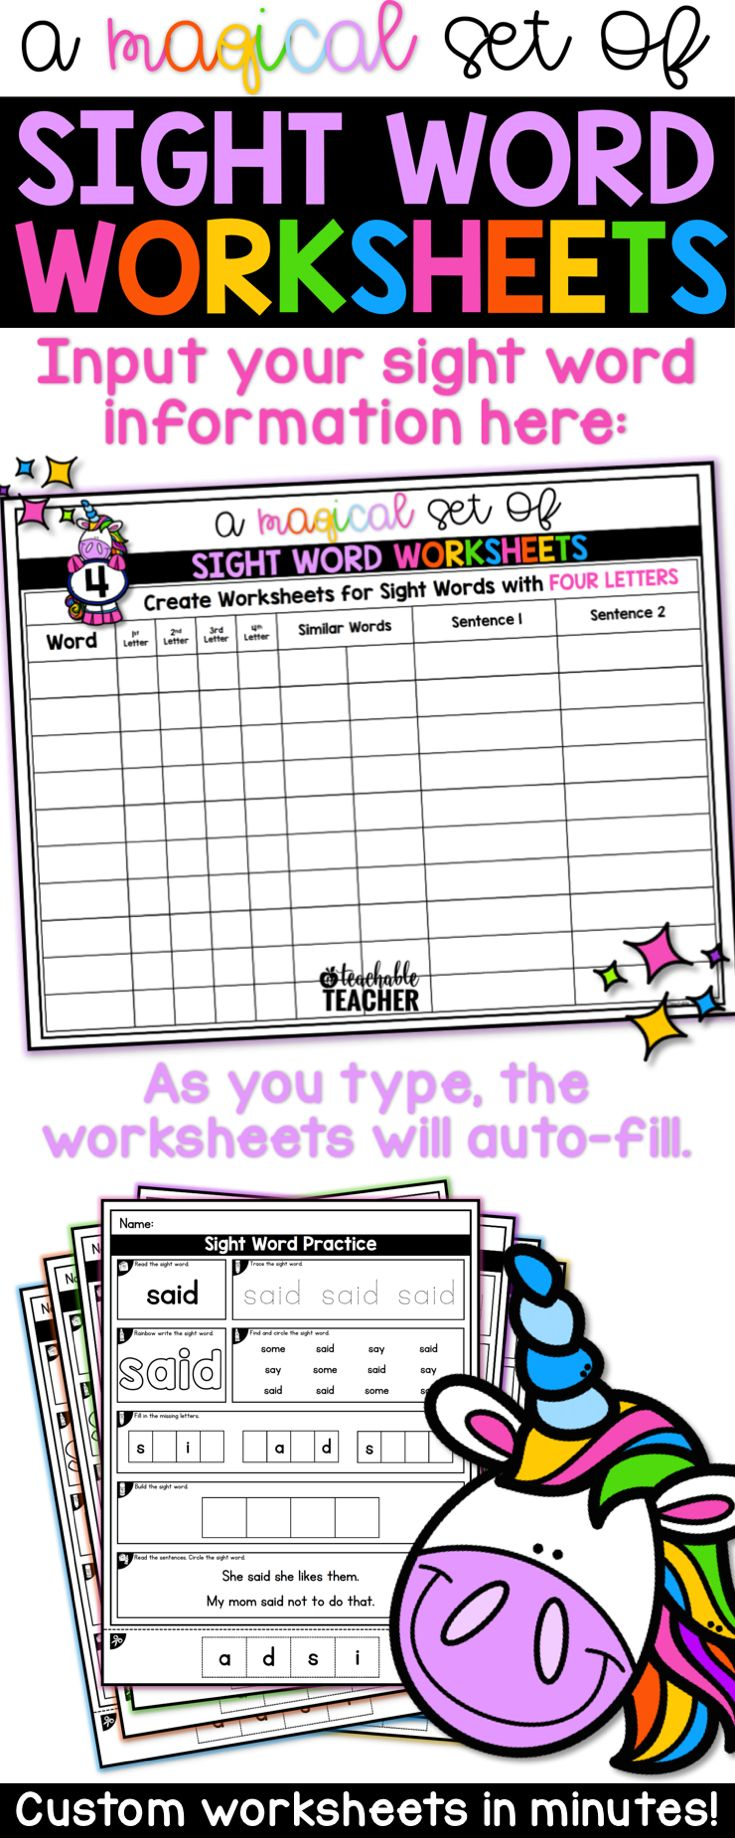 Editable sight word worksheets for kindergarten and first grade. Use these sight word printables with any word list. The pages are instantly generated when you type in your sight words...WOW!